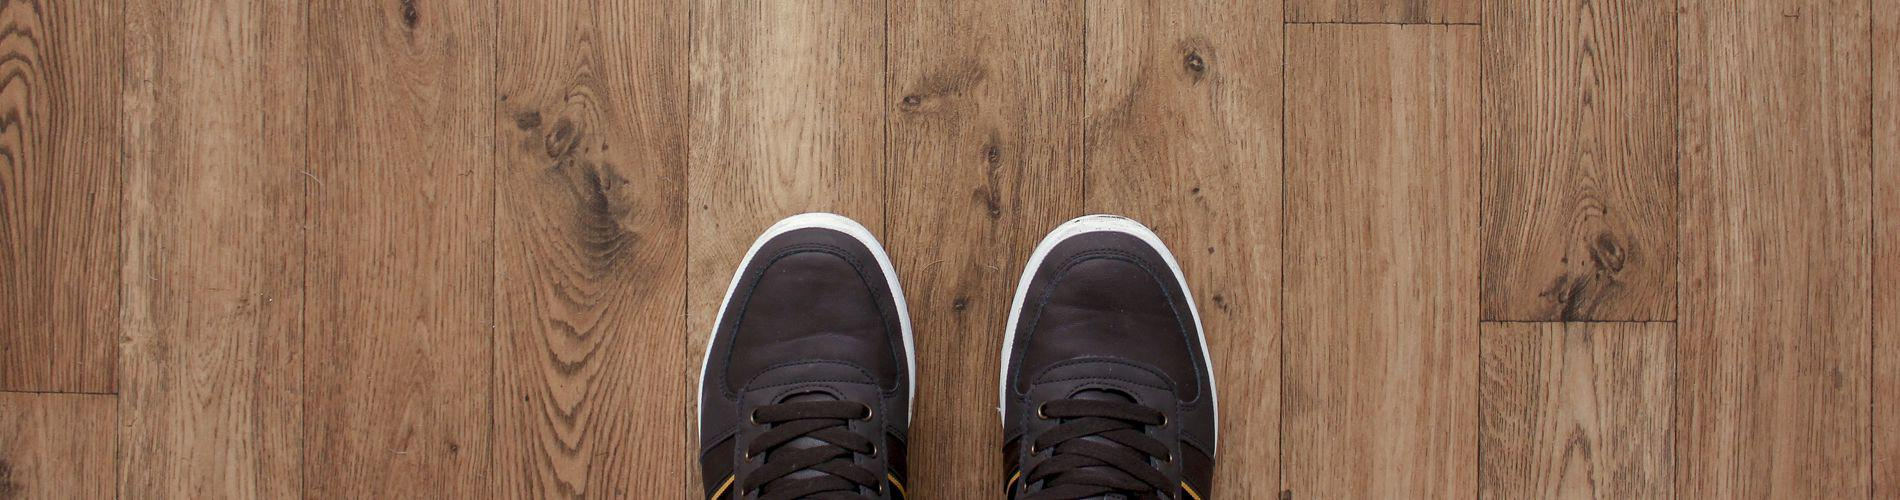 guide to wooden flooring